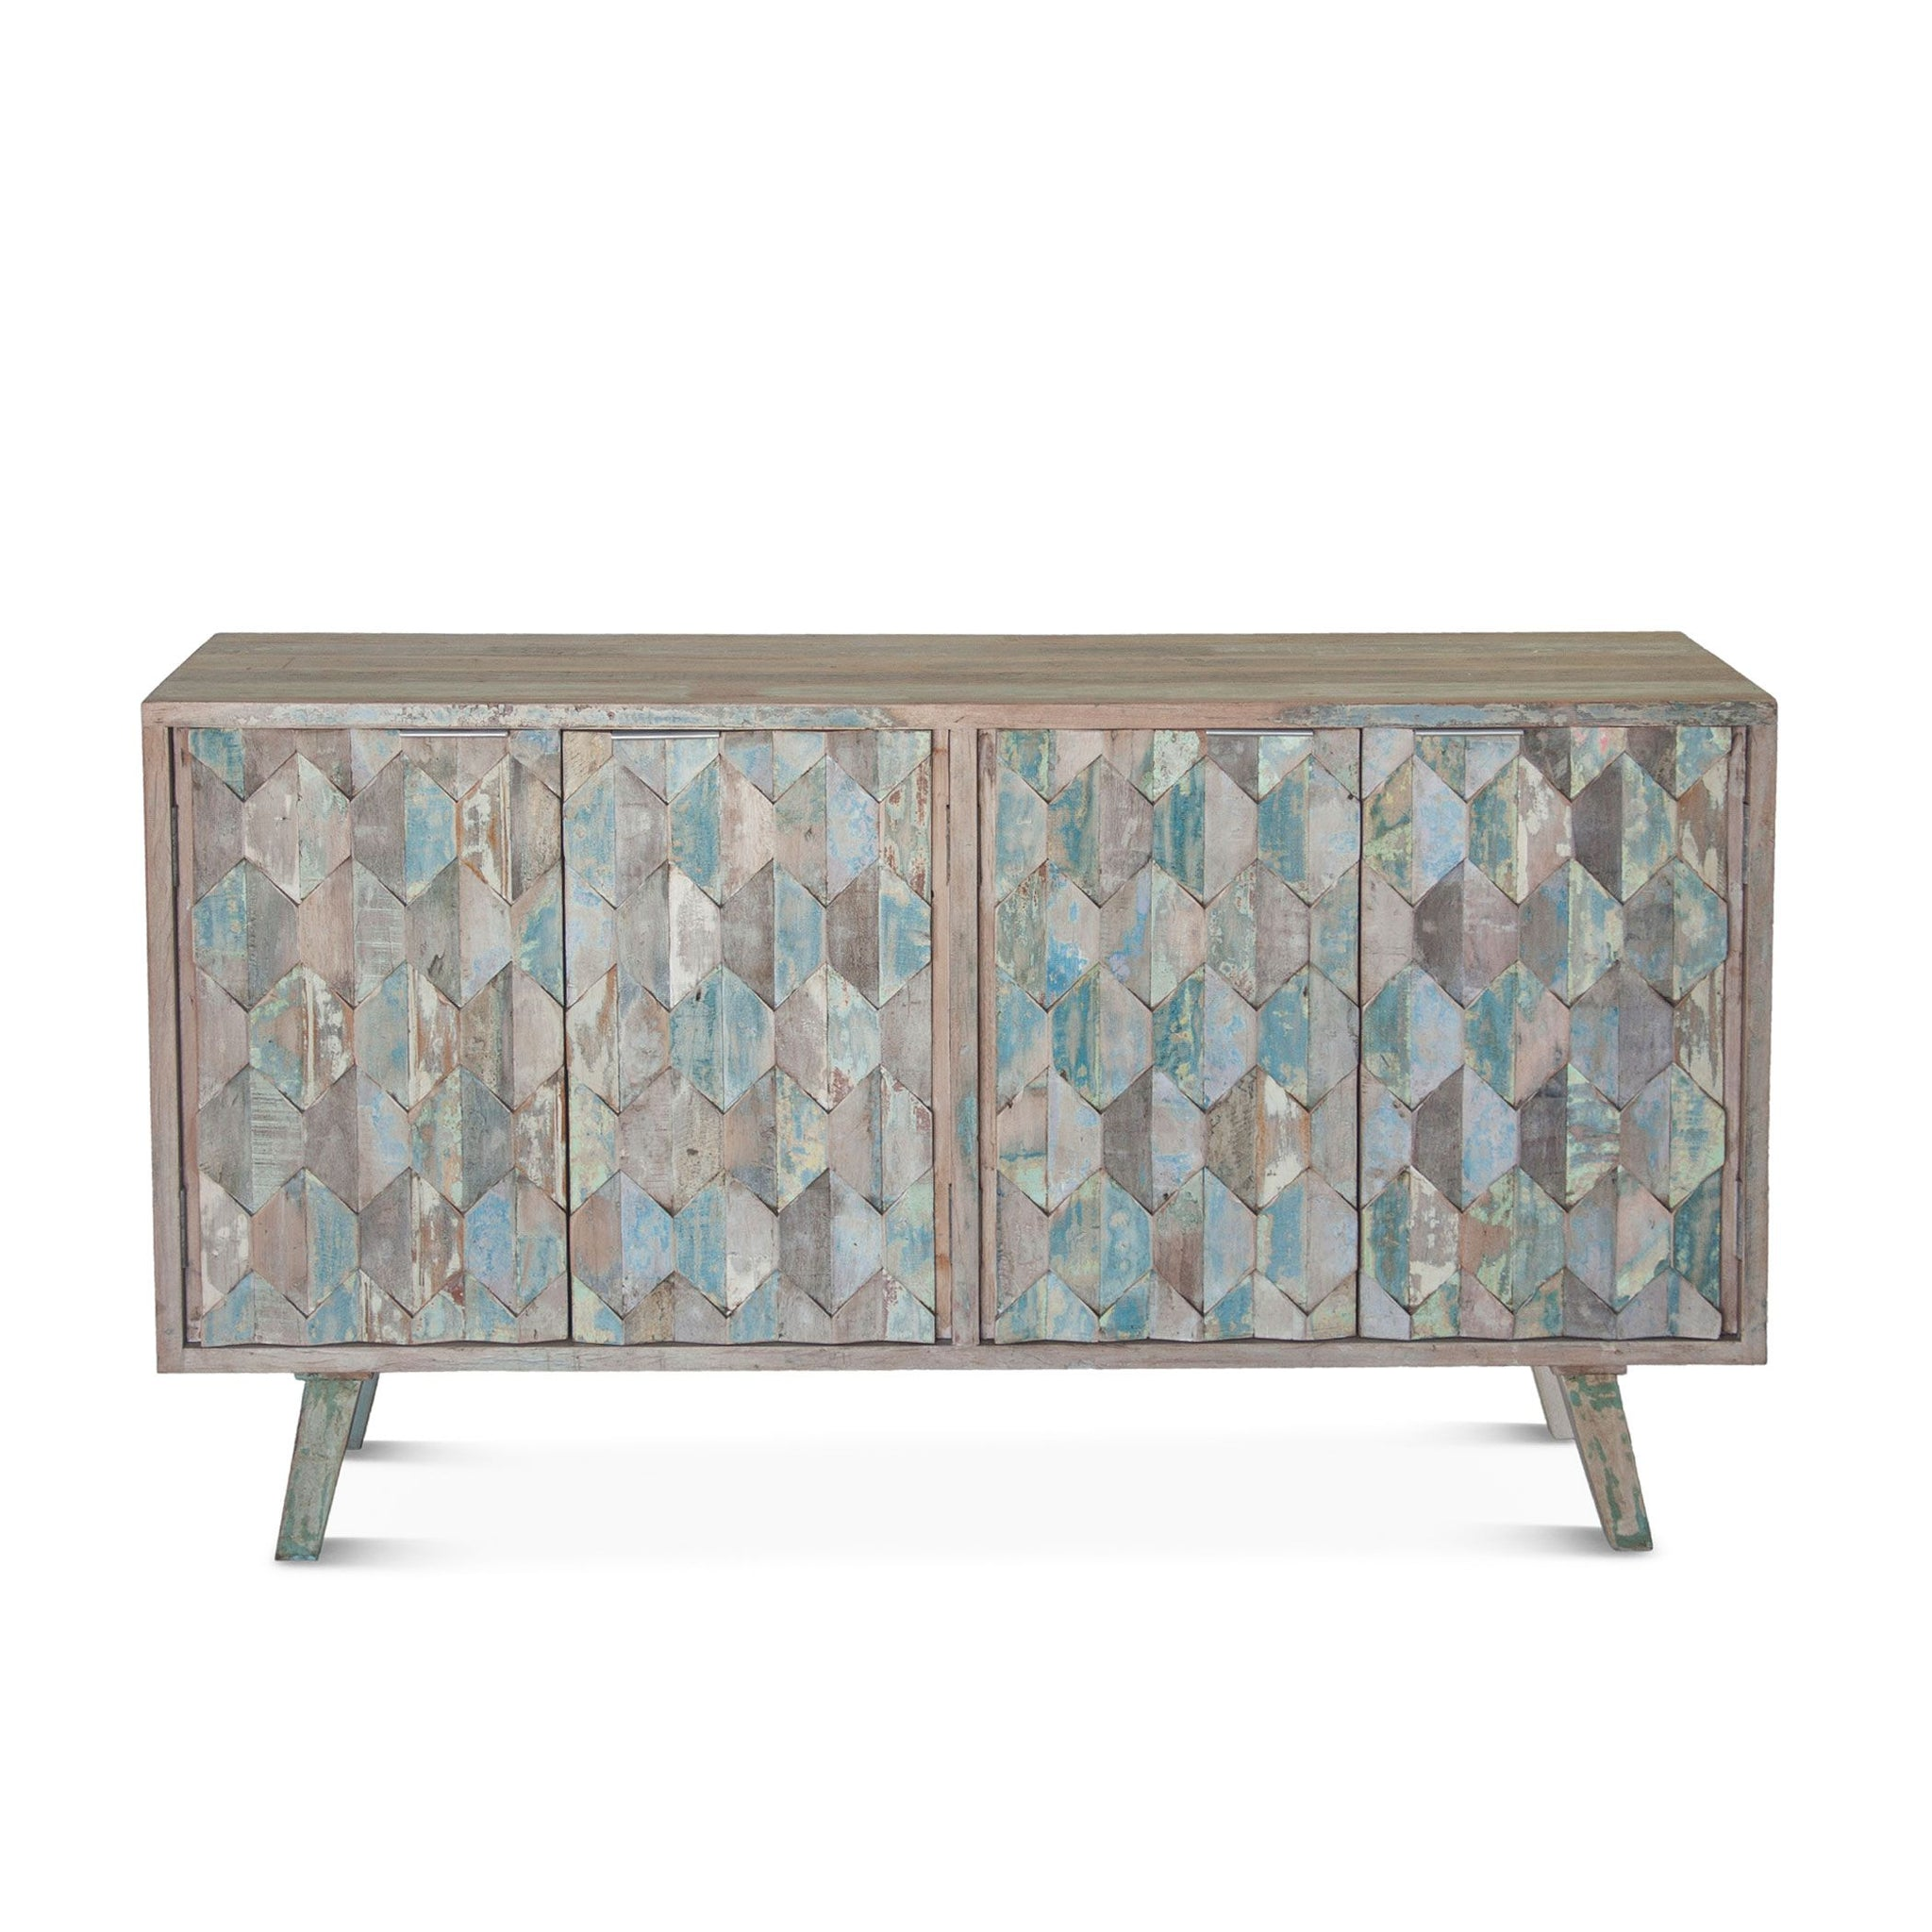 Reclaimed Vintage Teal Sideboard Buffet